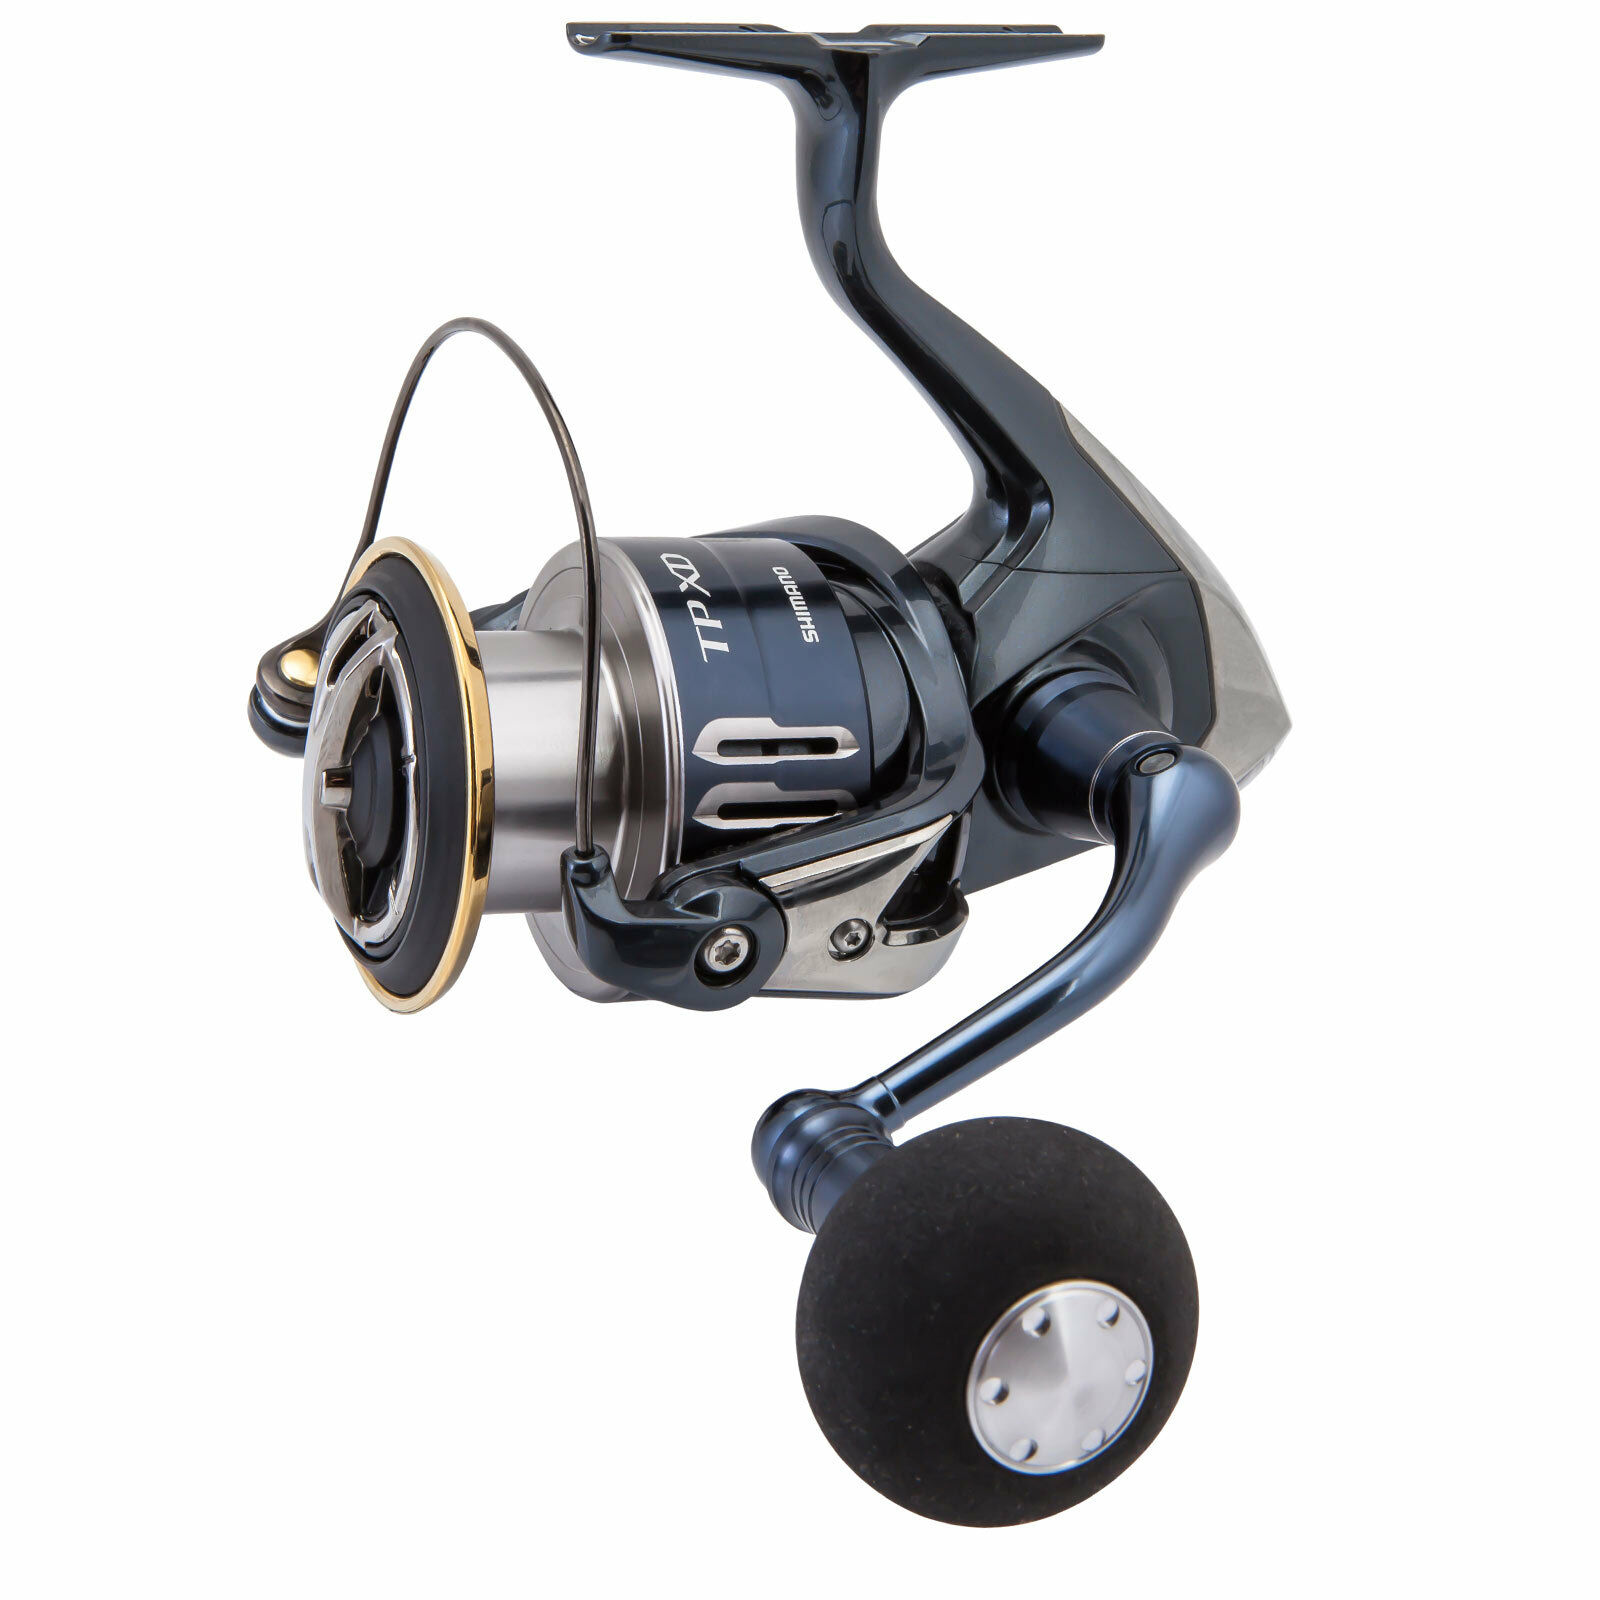 Shimano Angel Ruolo stazionario ruolo spinnrolleTwin Power XD c3000xg